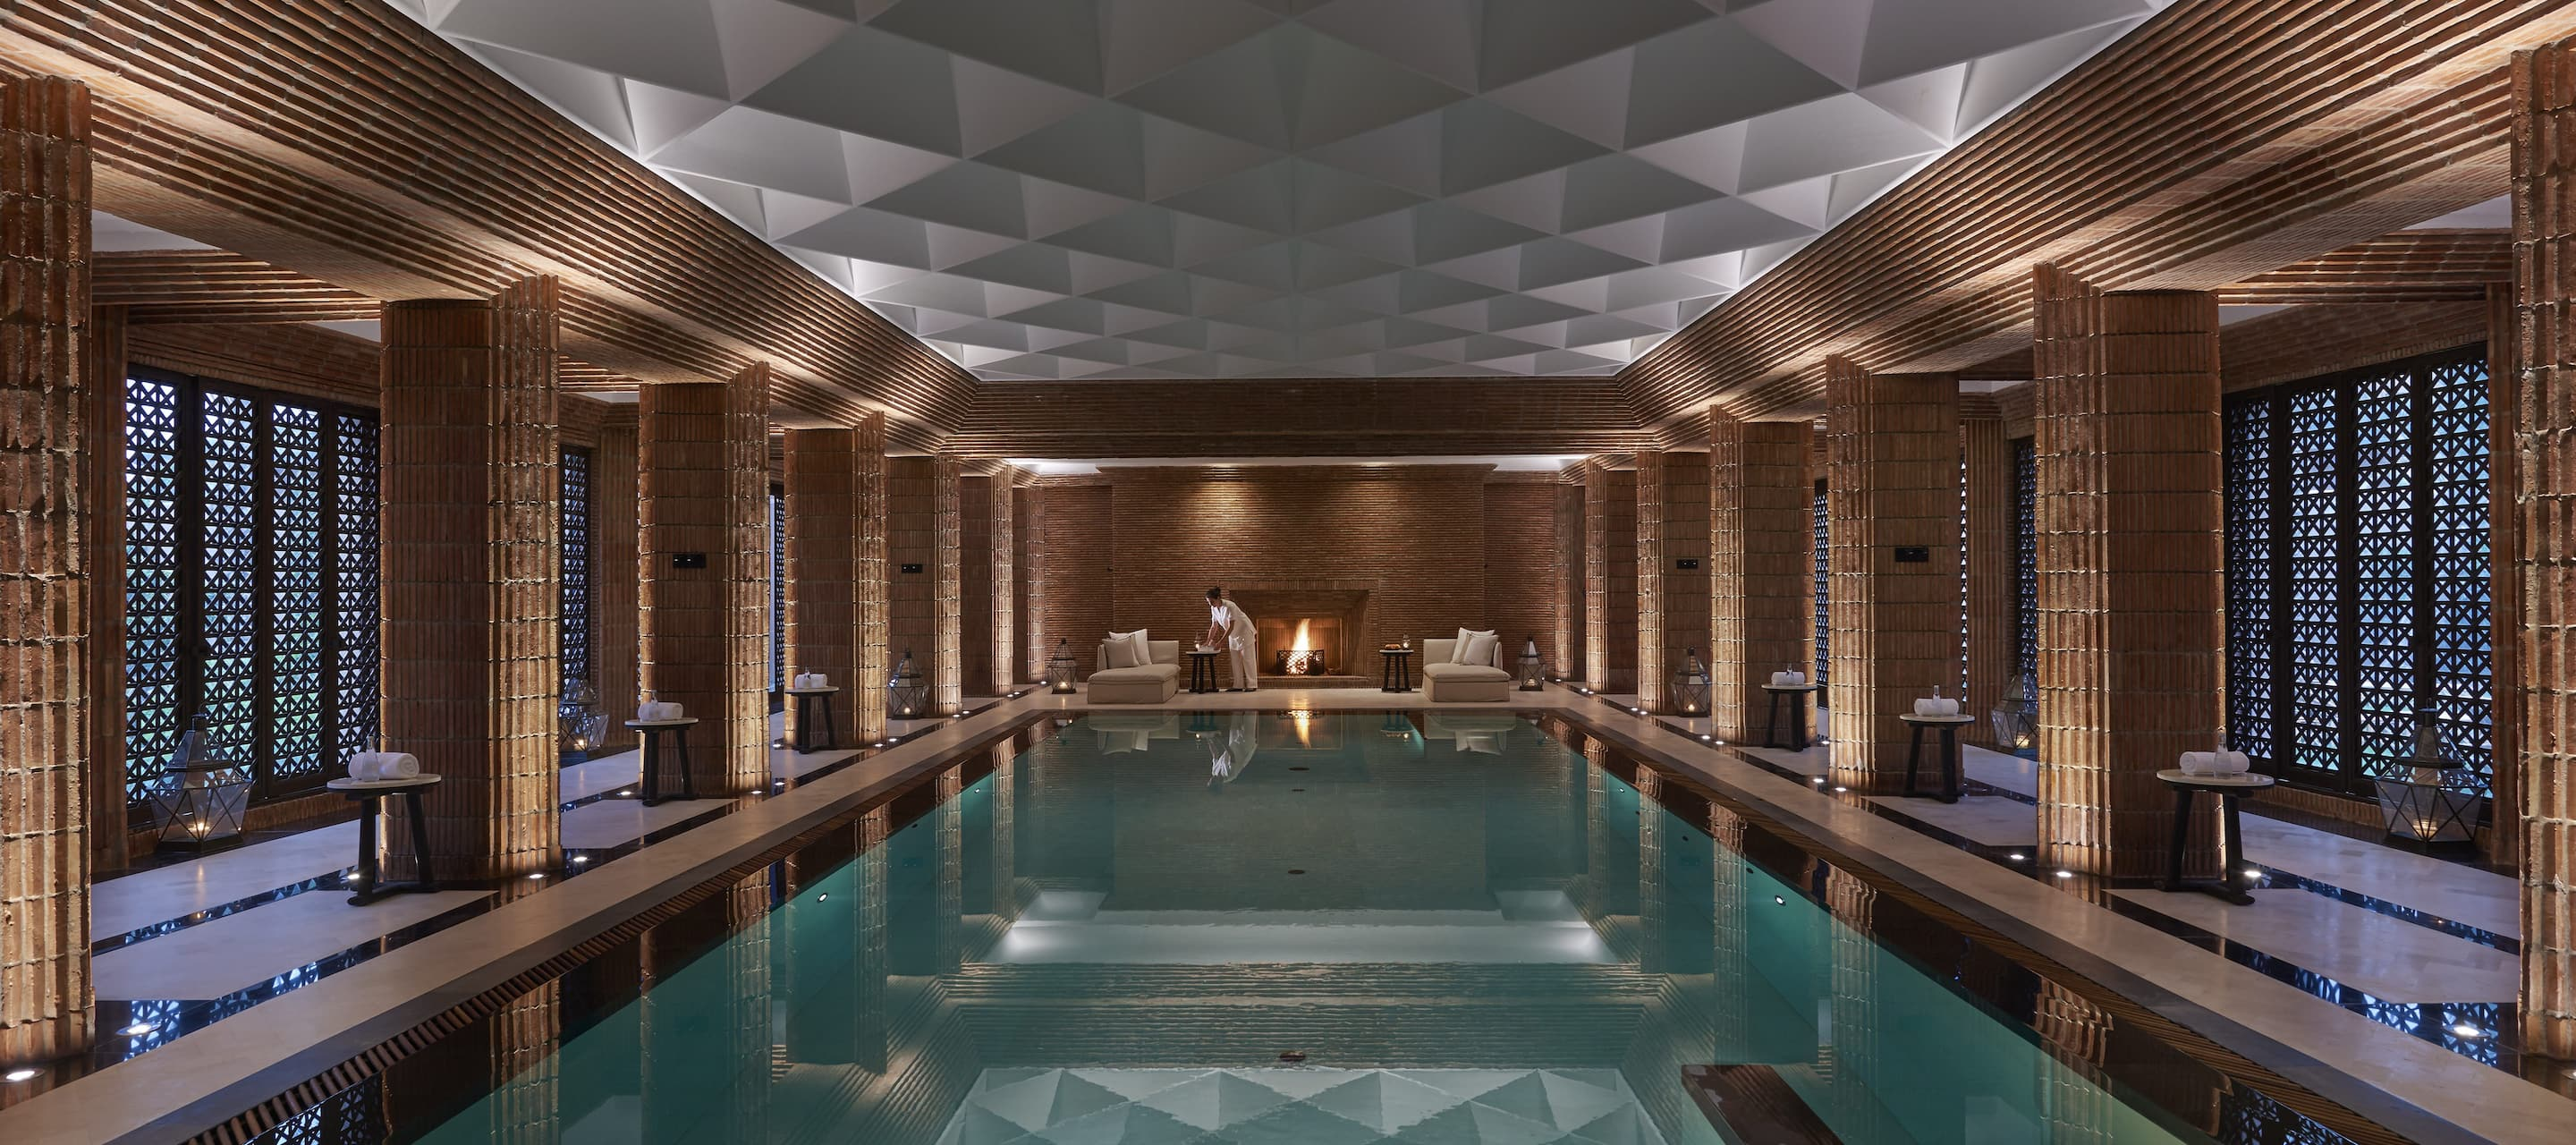 Six of the best spas with serious design cred